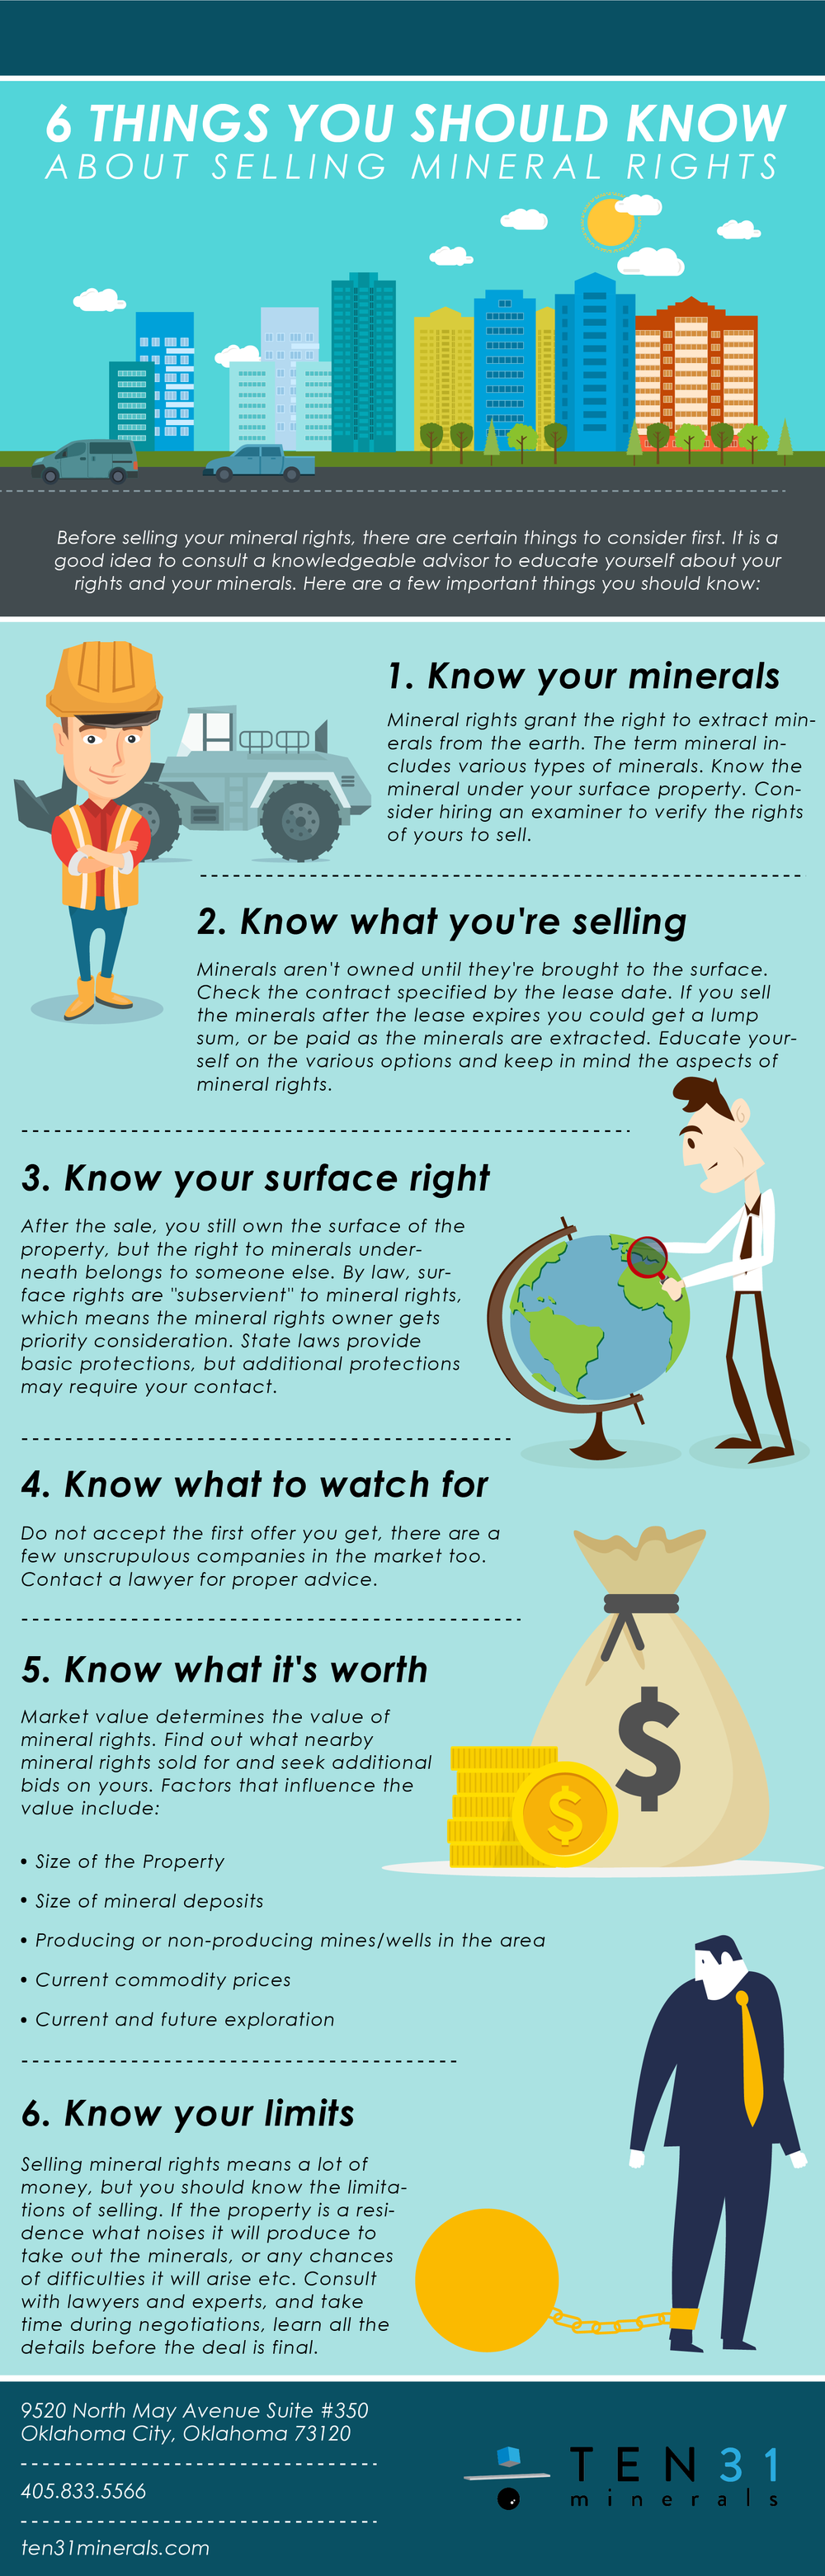 6 Things You Should Know About Selling Mineral Rights-01.png